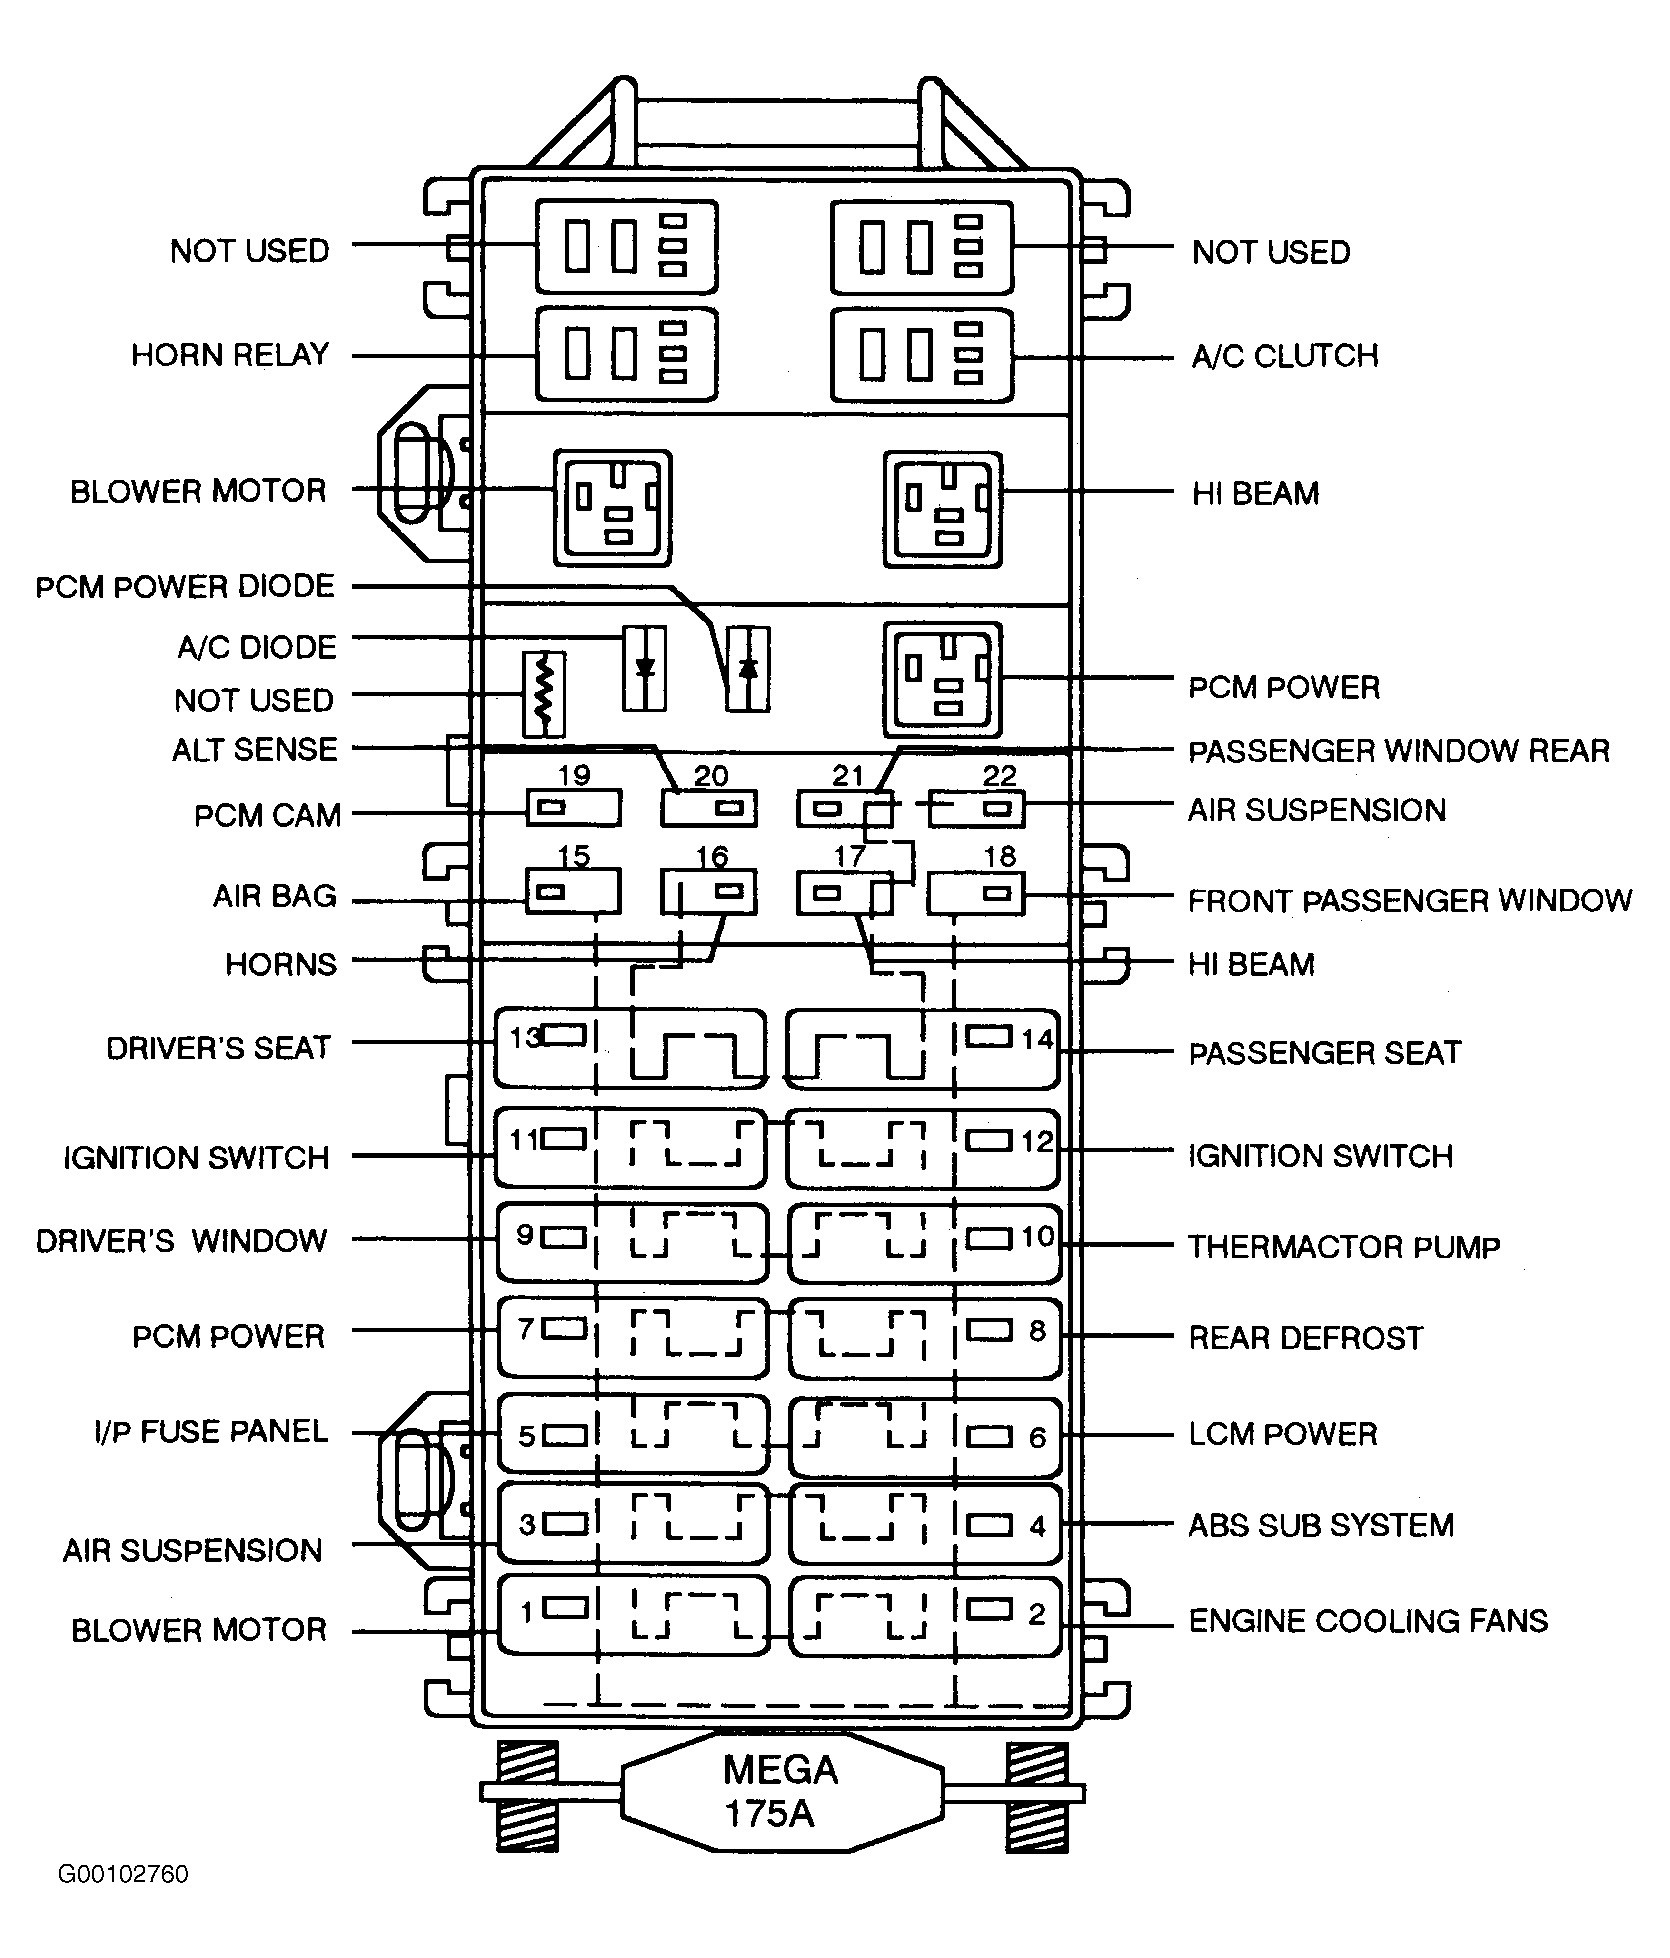 auto fuse box wiring wiring diagram schematics 2013 nissan sentra fuse box diagram automotive fuse box [ 1670 x 1958 Pixel ]